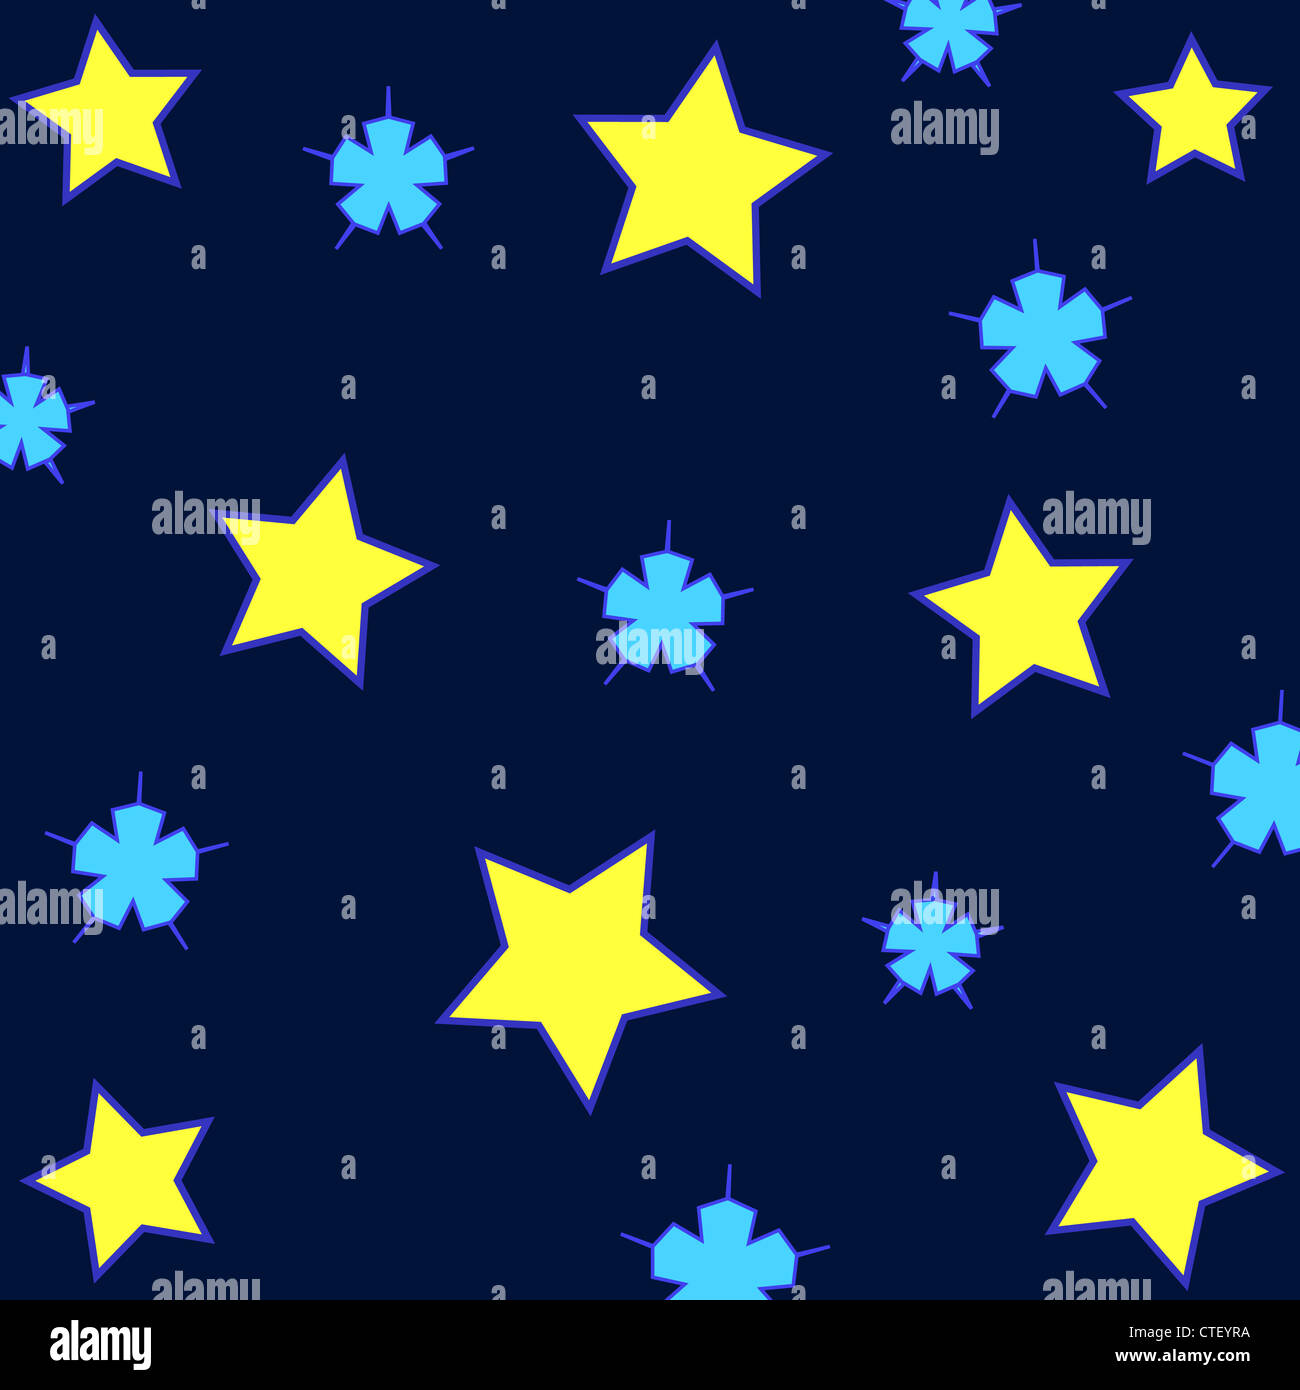 Seamless stars pattern in blue and yellow Stock Photo